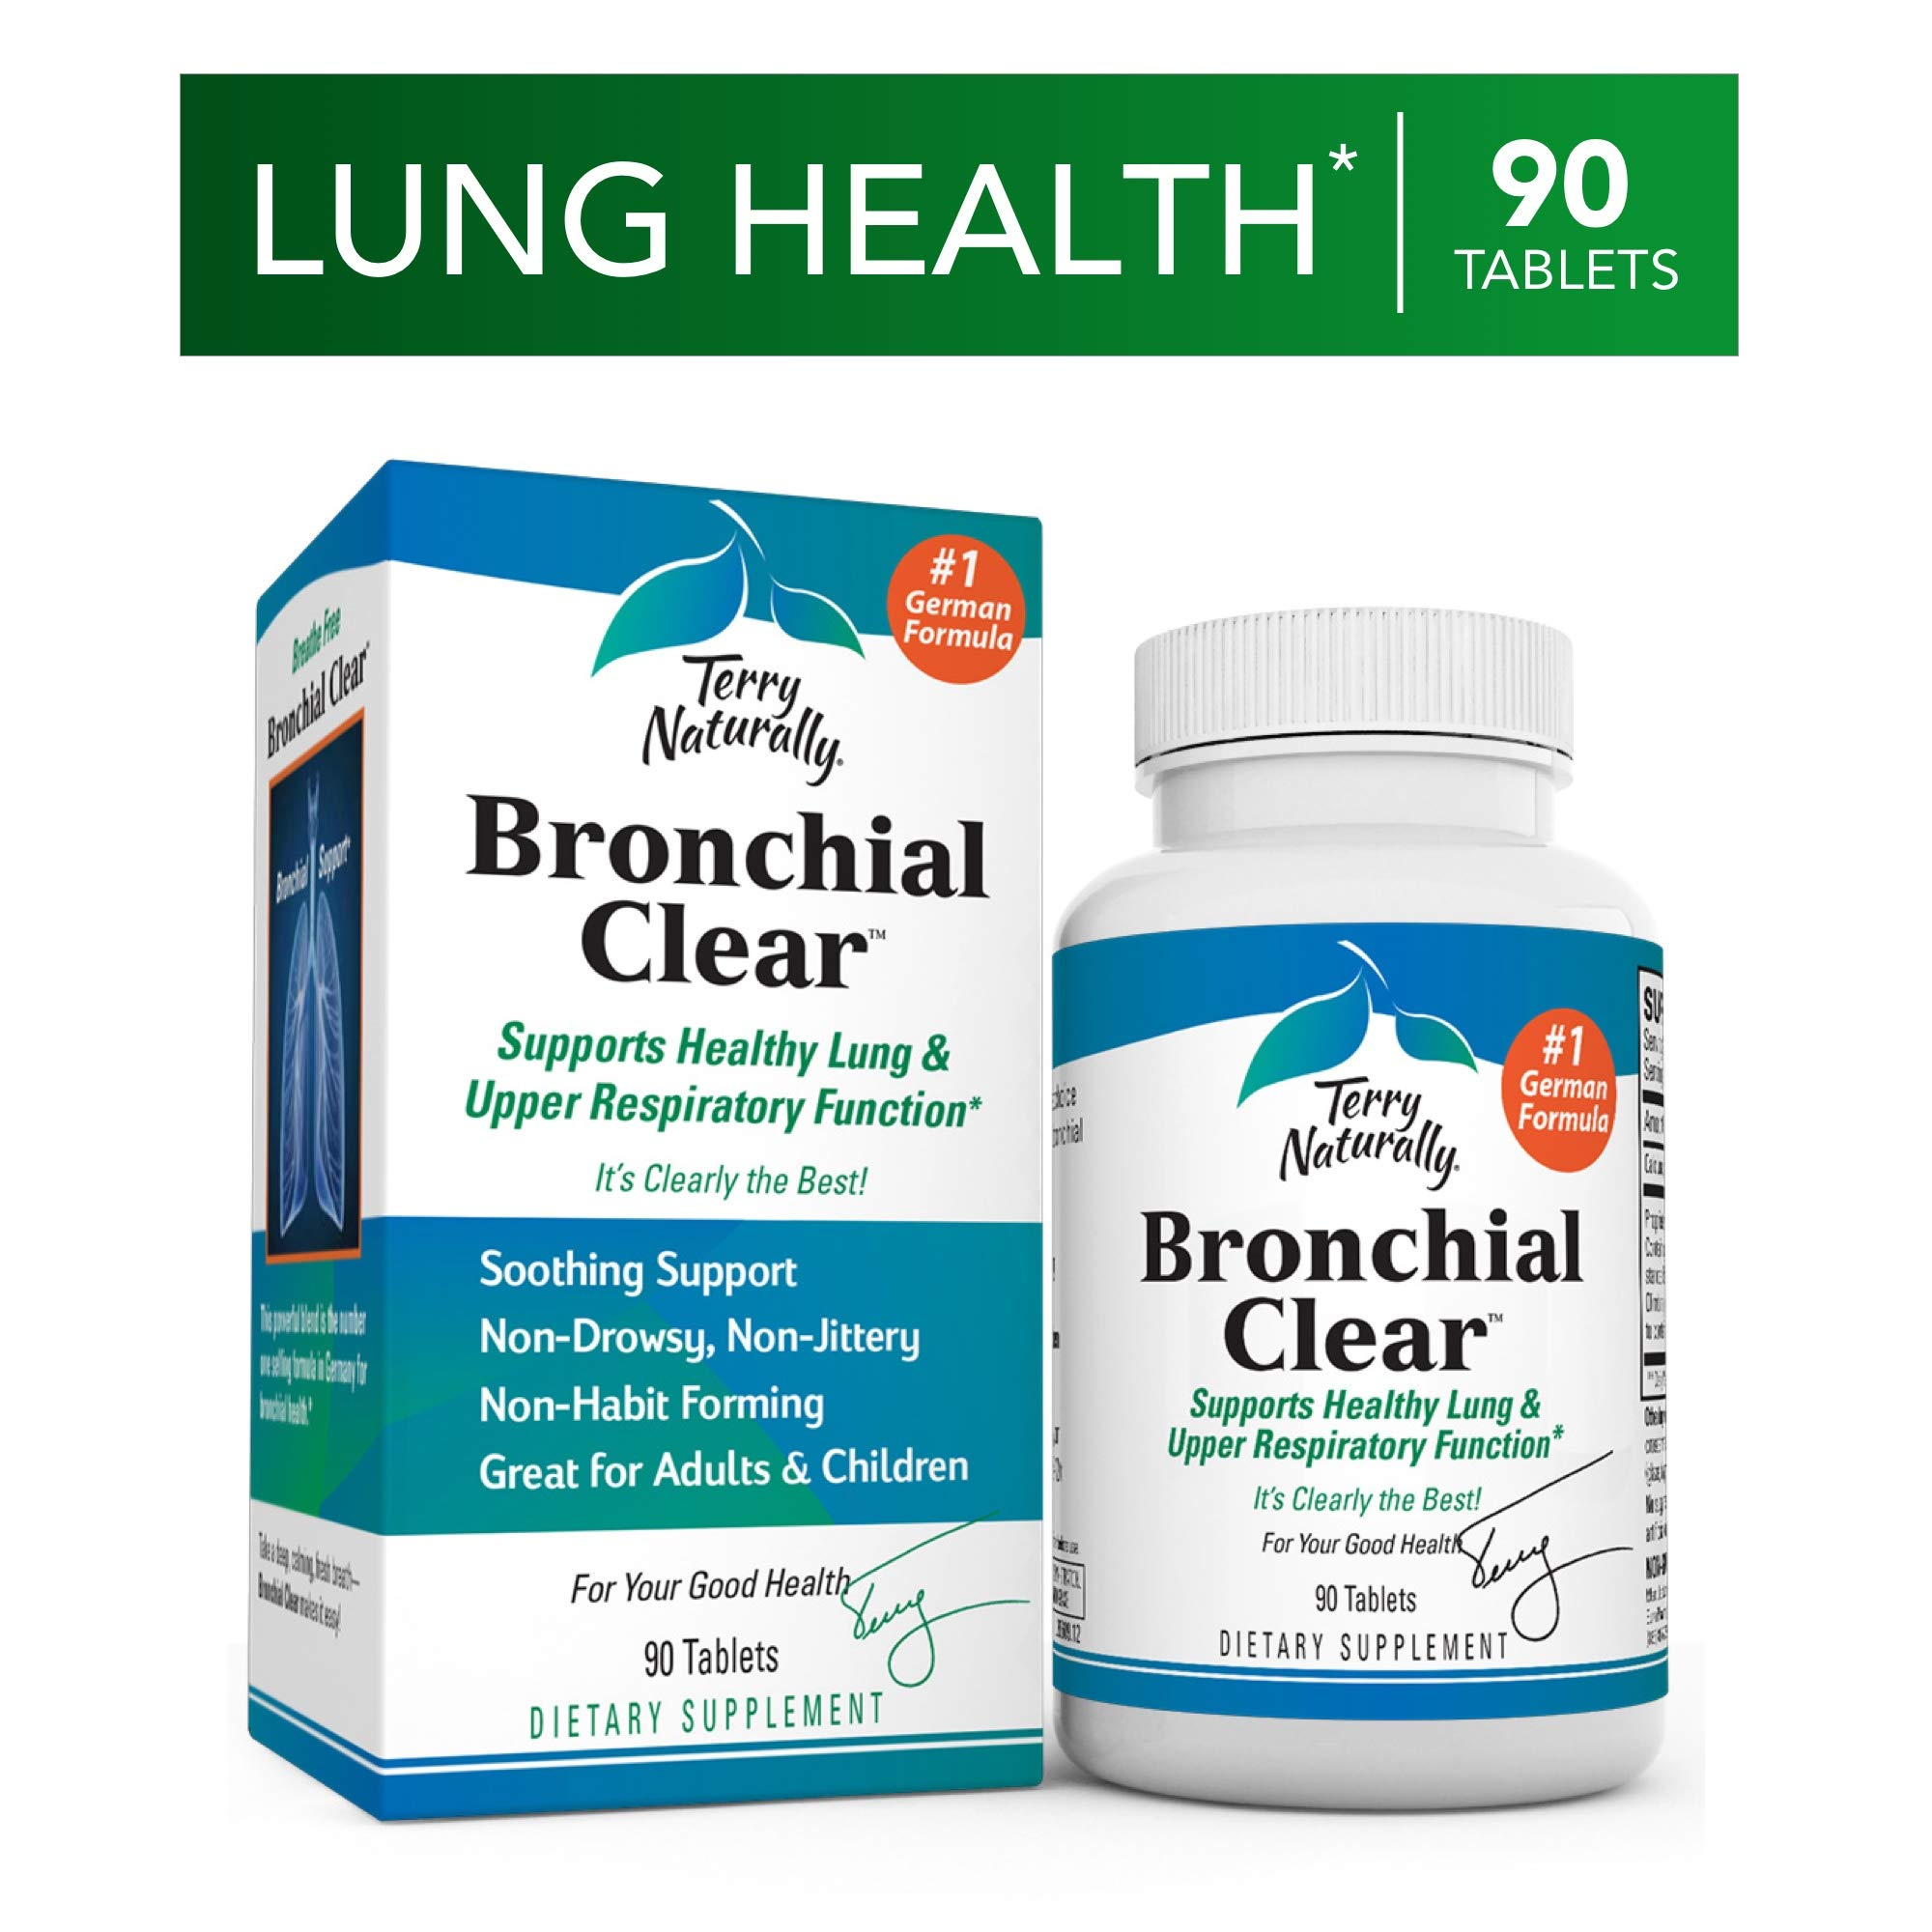 Terry Naturally Bronchial Clear - 90 Tablets - Soothing Lung & Upper Respiratory Function Support Supplement, Non-Drowsy, Non-Jittery - Non-GMO, Gluten-Free - 90 Servings